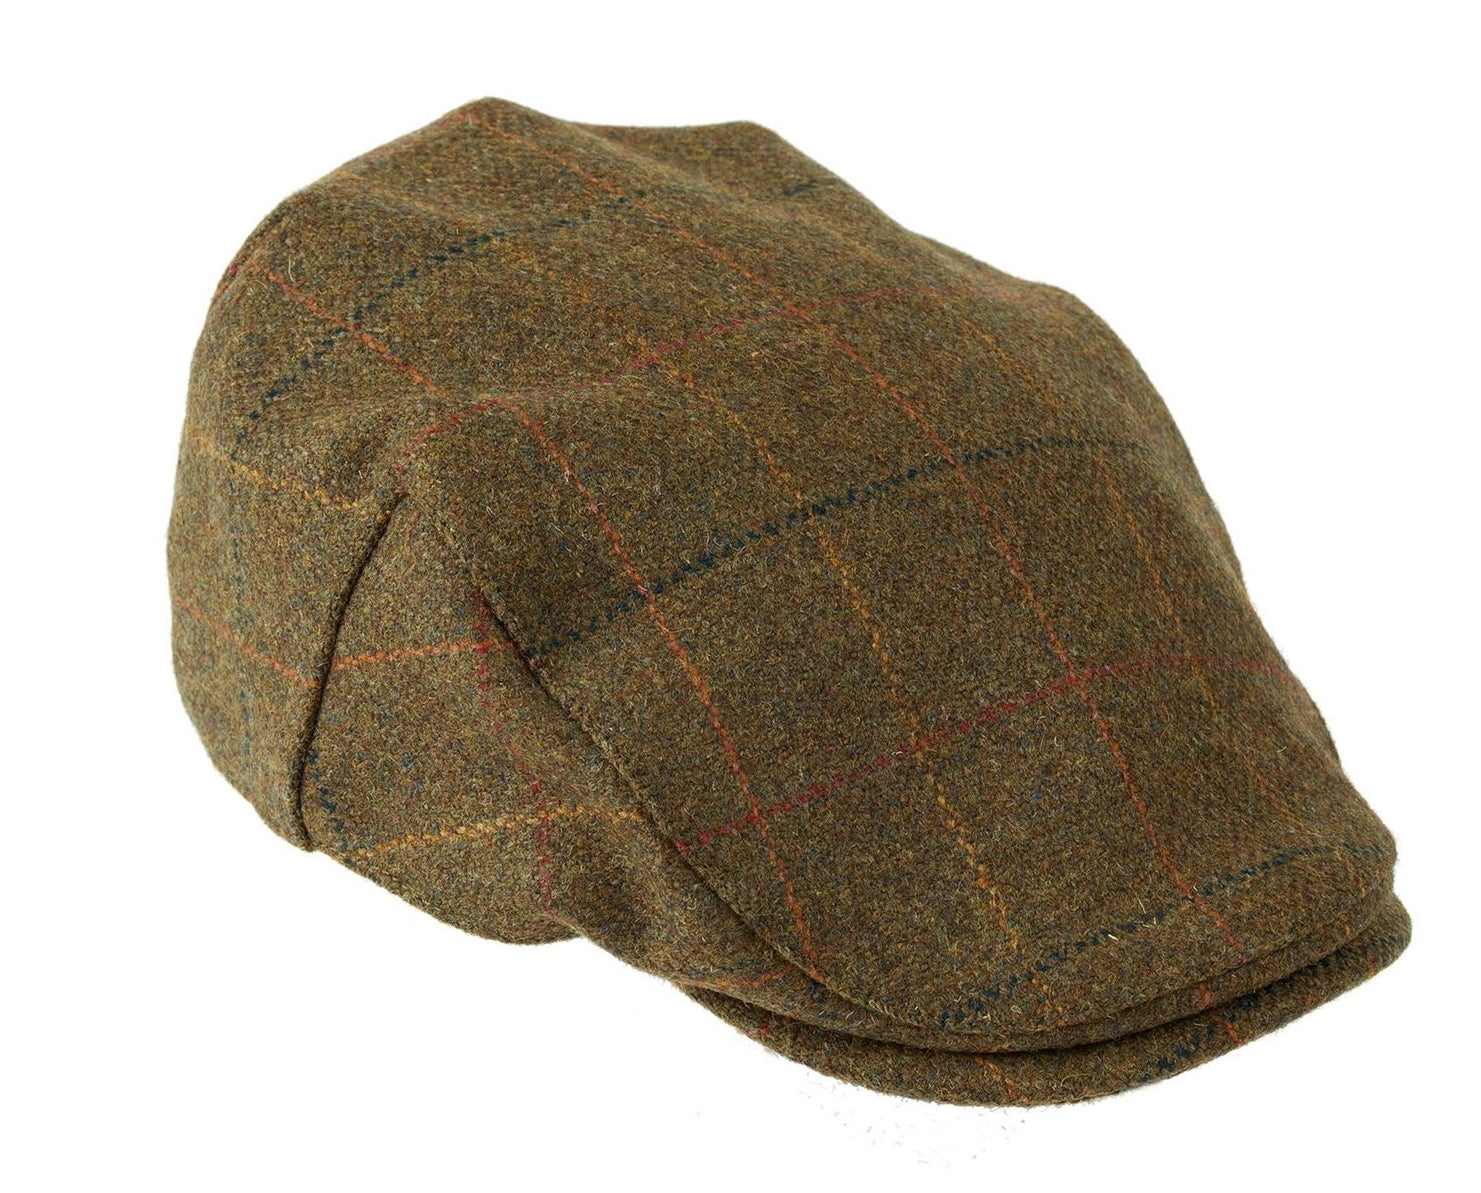 9676dbef0 Heather Kinloch Waterproof Tweed Flat Cap Brown Check – Hollands ...